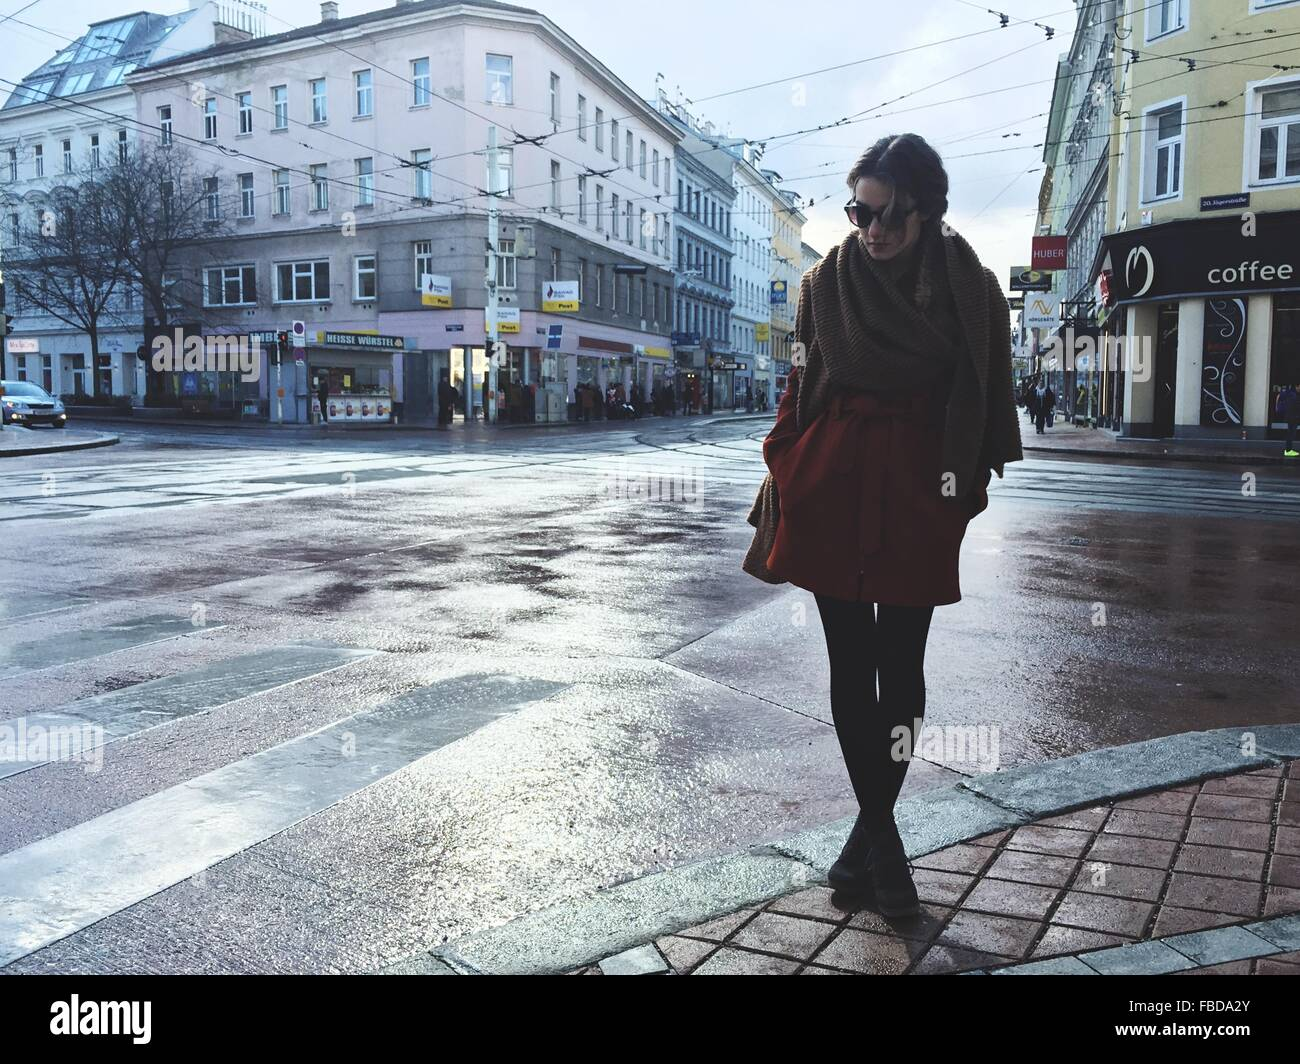 Young Woman Standing On Wet Street In City - Stock Image